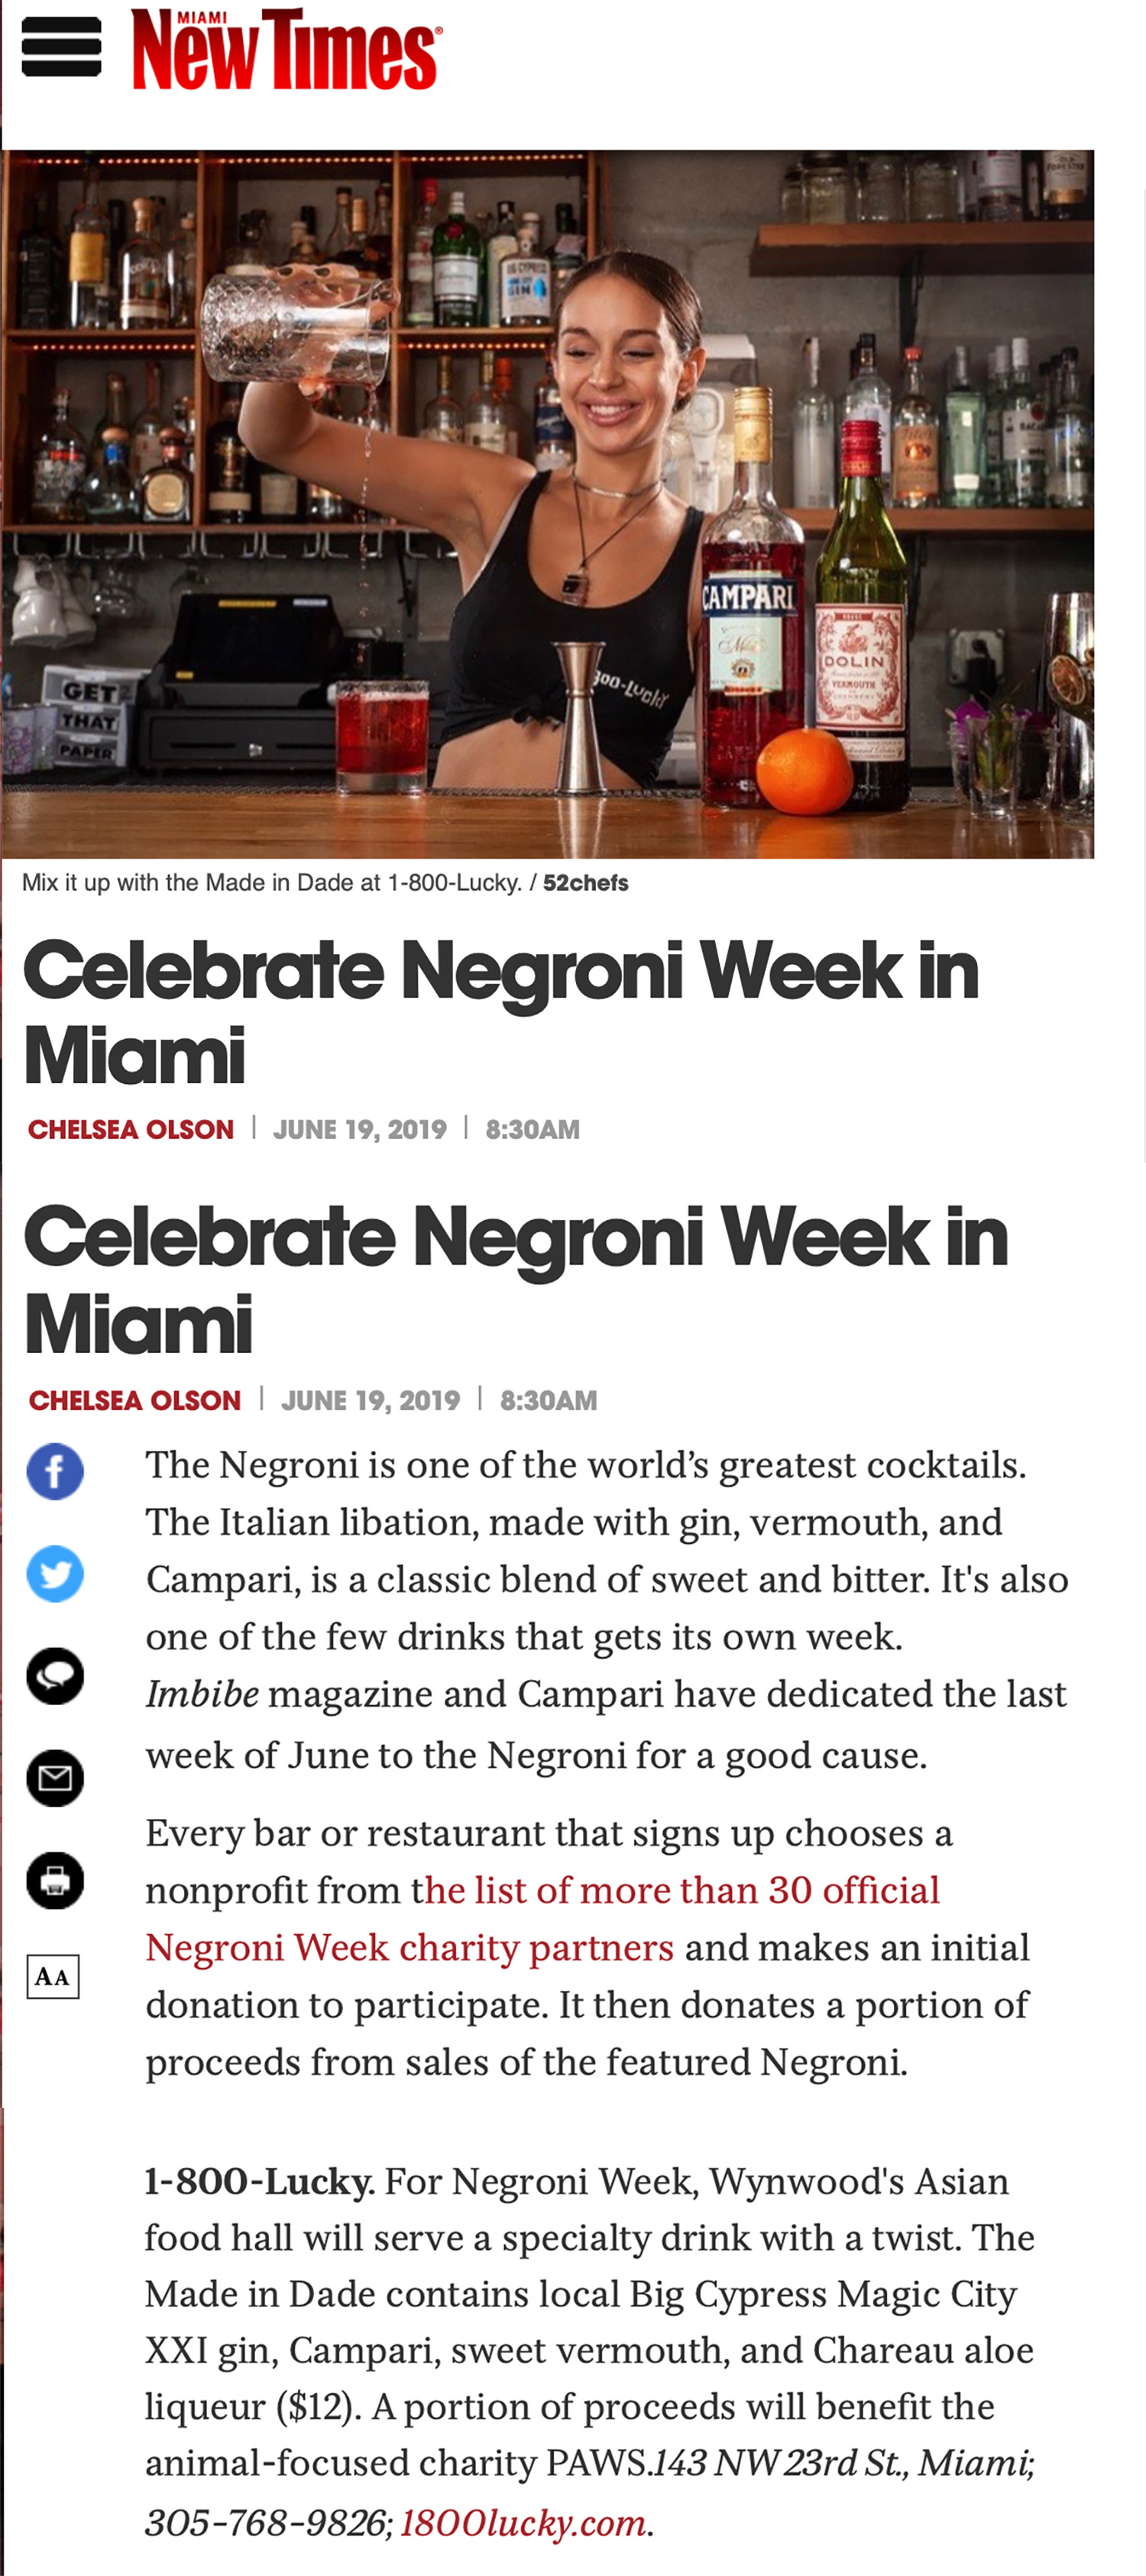 MIAMI NEW TIMES June 2019